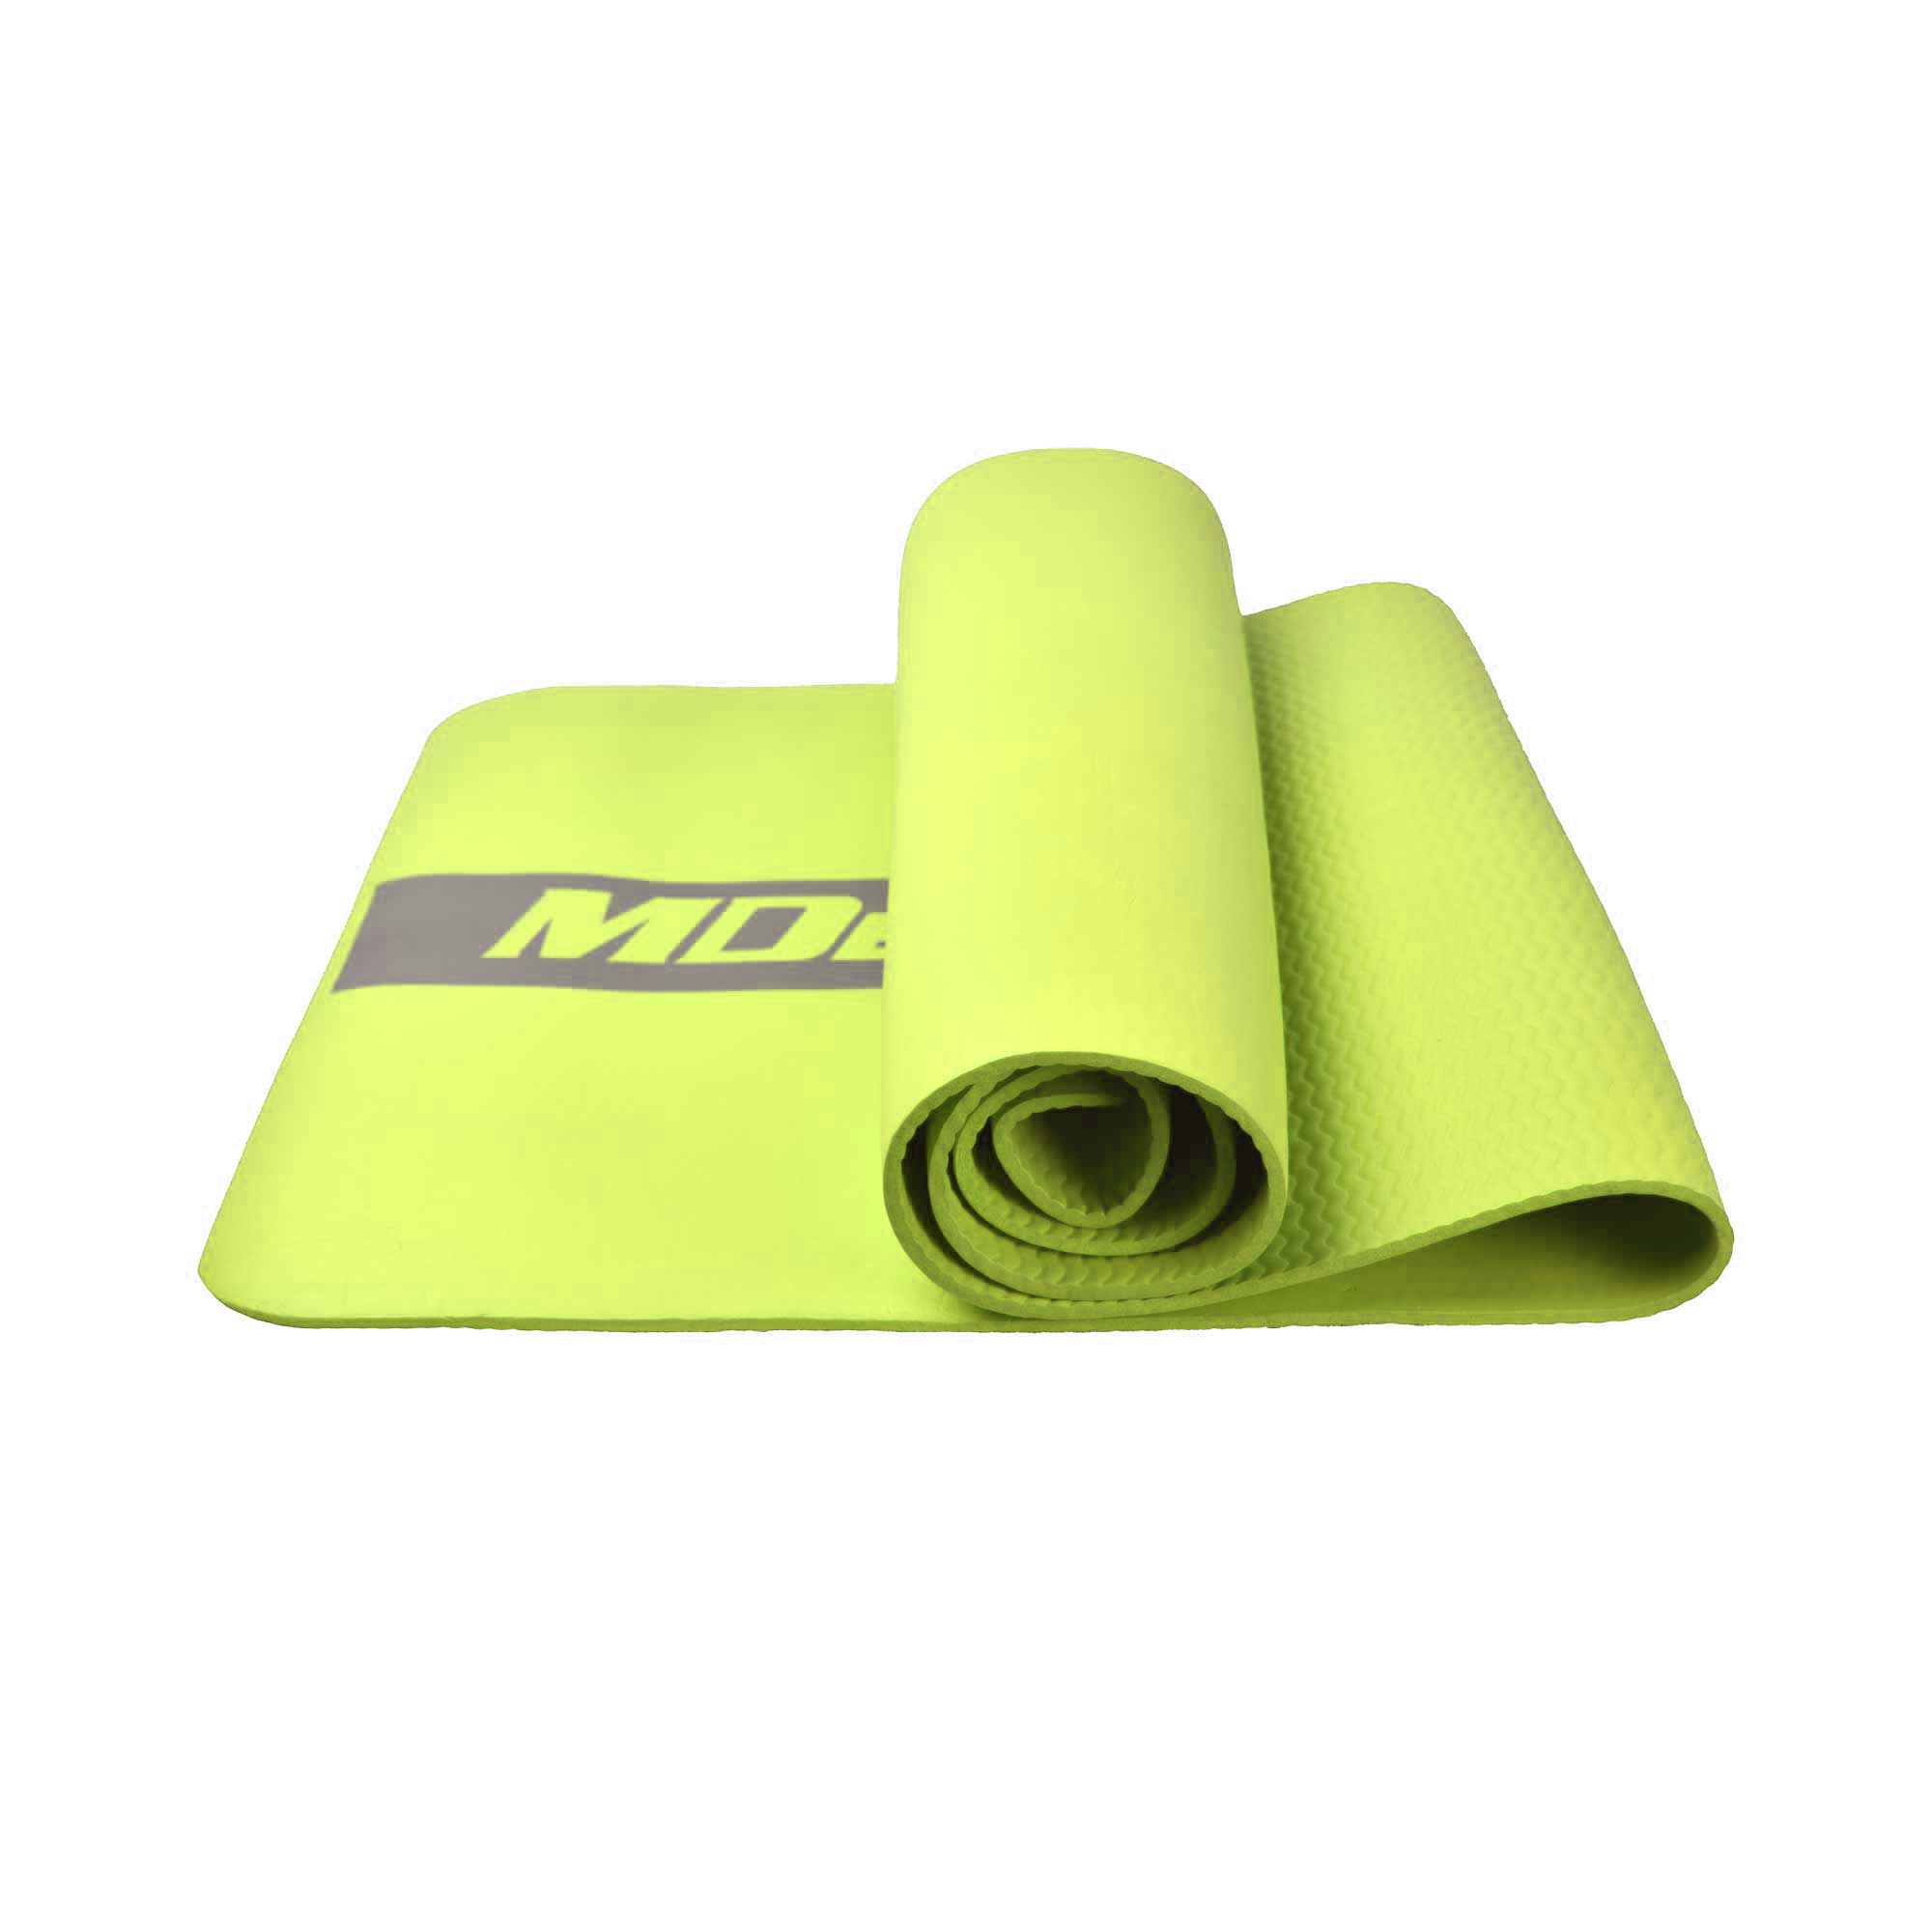 MDBUDDY MD9041 HIGH ELASTIC RUBBER PILATES YOGA MAT 6MM THICKNESS - GREEN